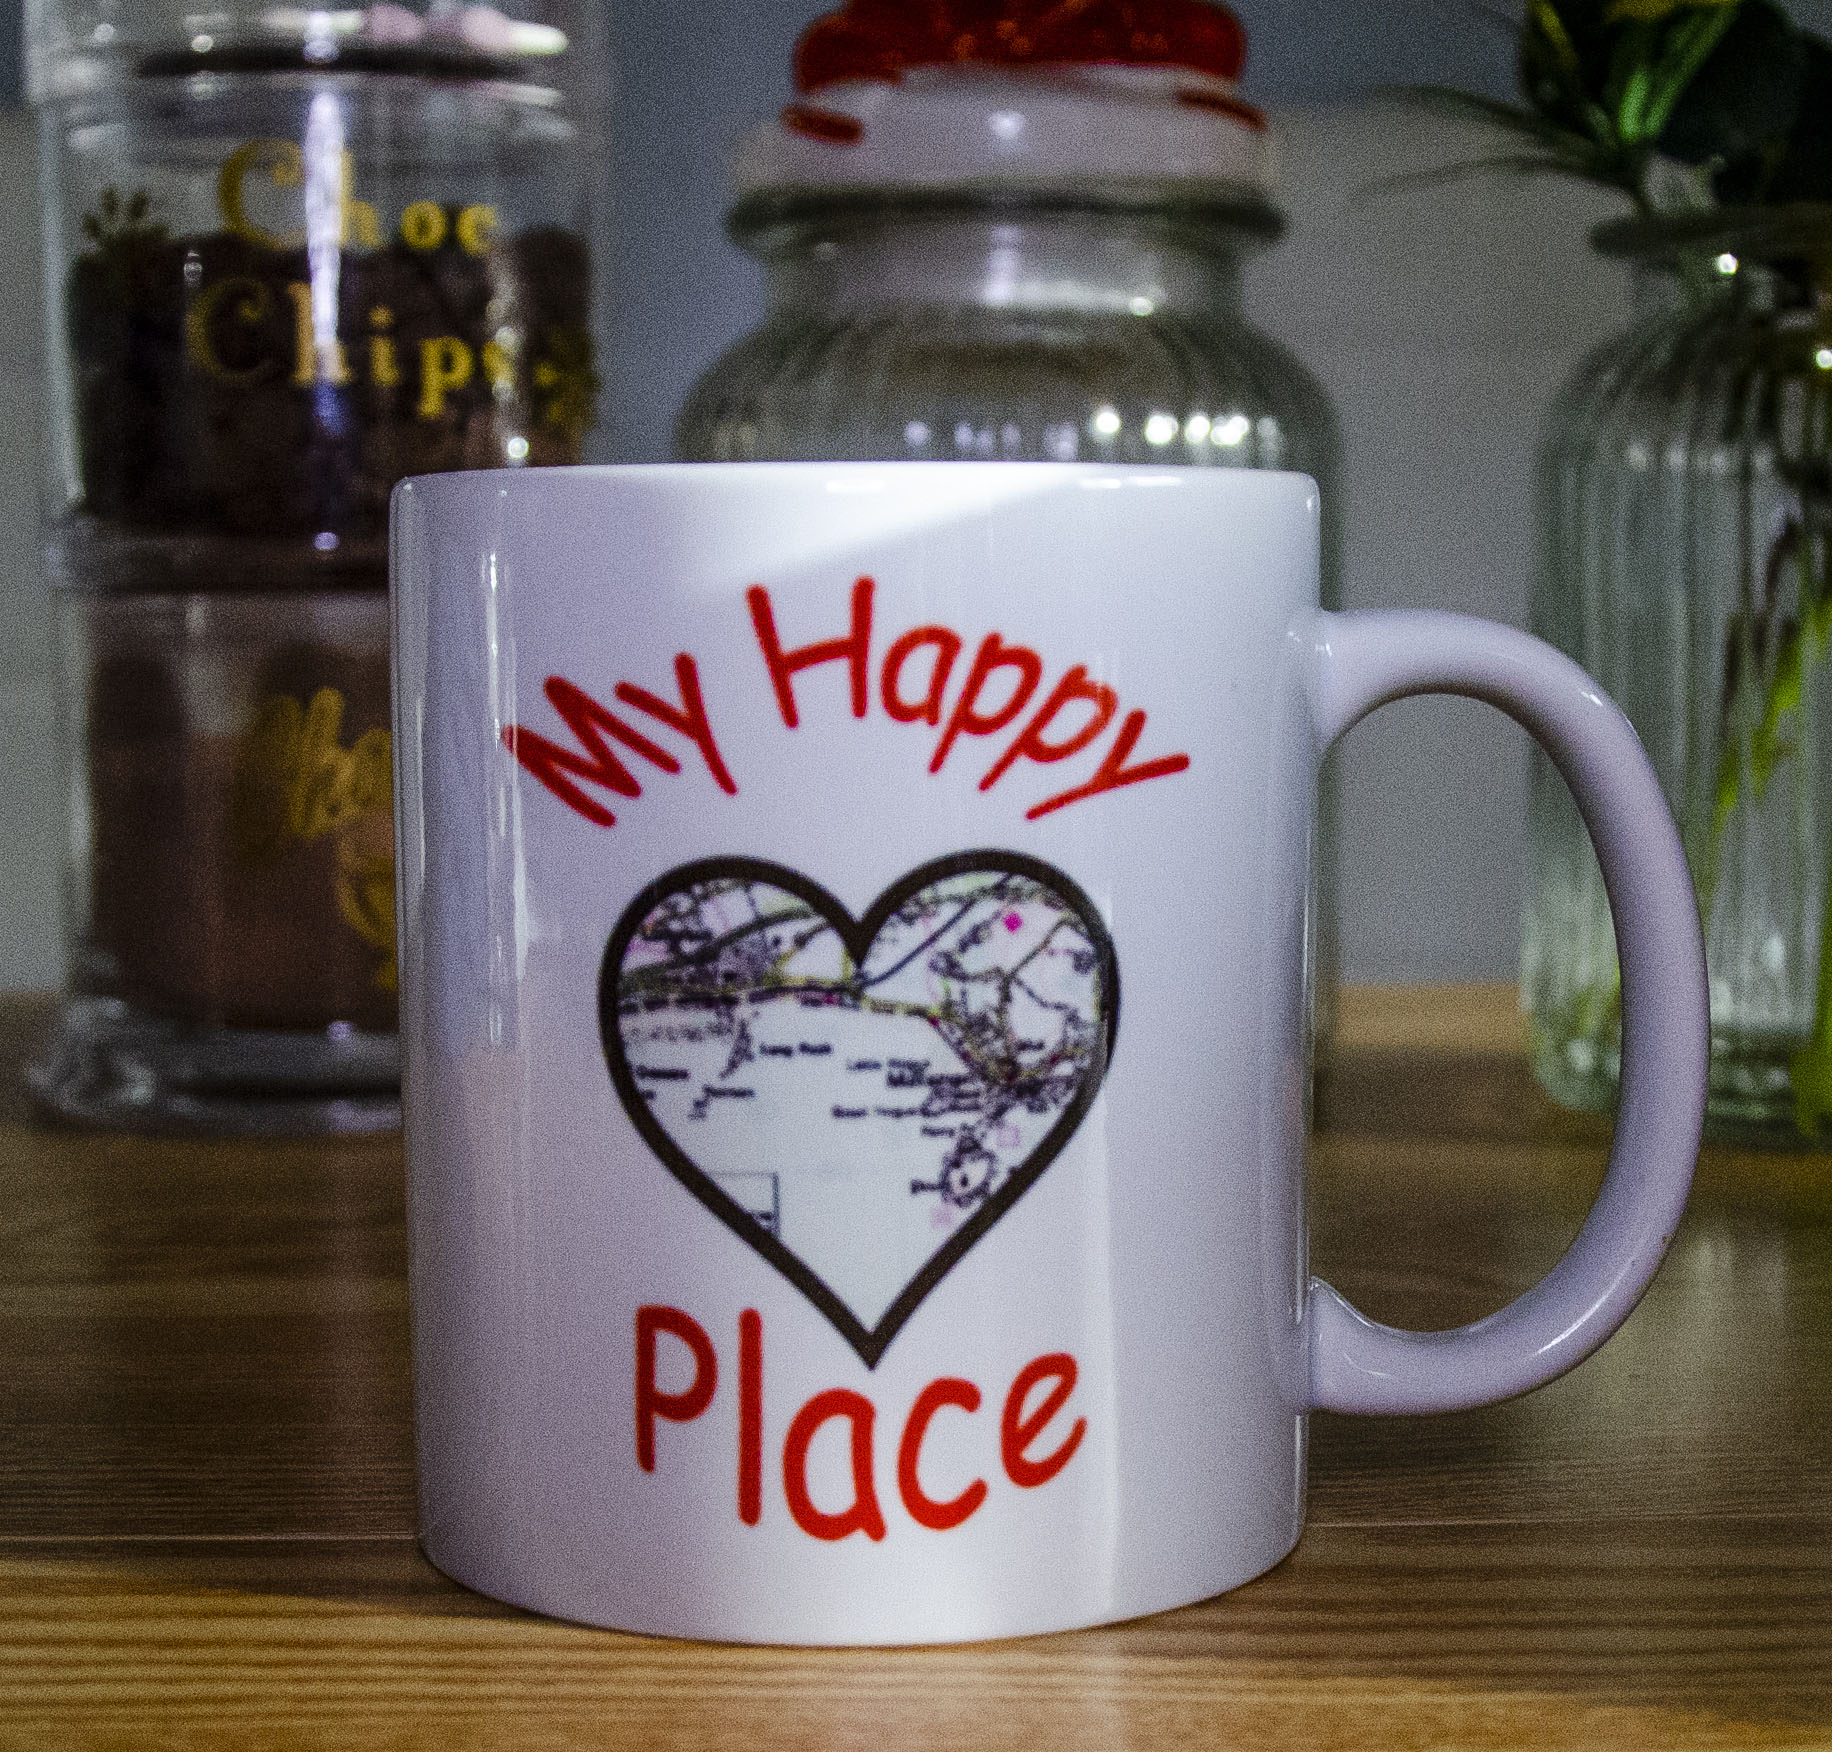 Personalised Unique Mug 'My Happy Place' Contains Map or image of the area surrounding the recipients happy place